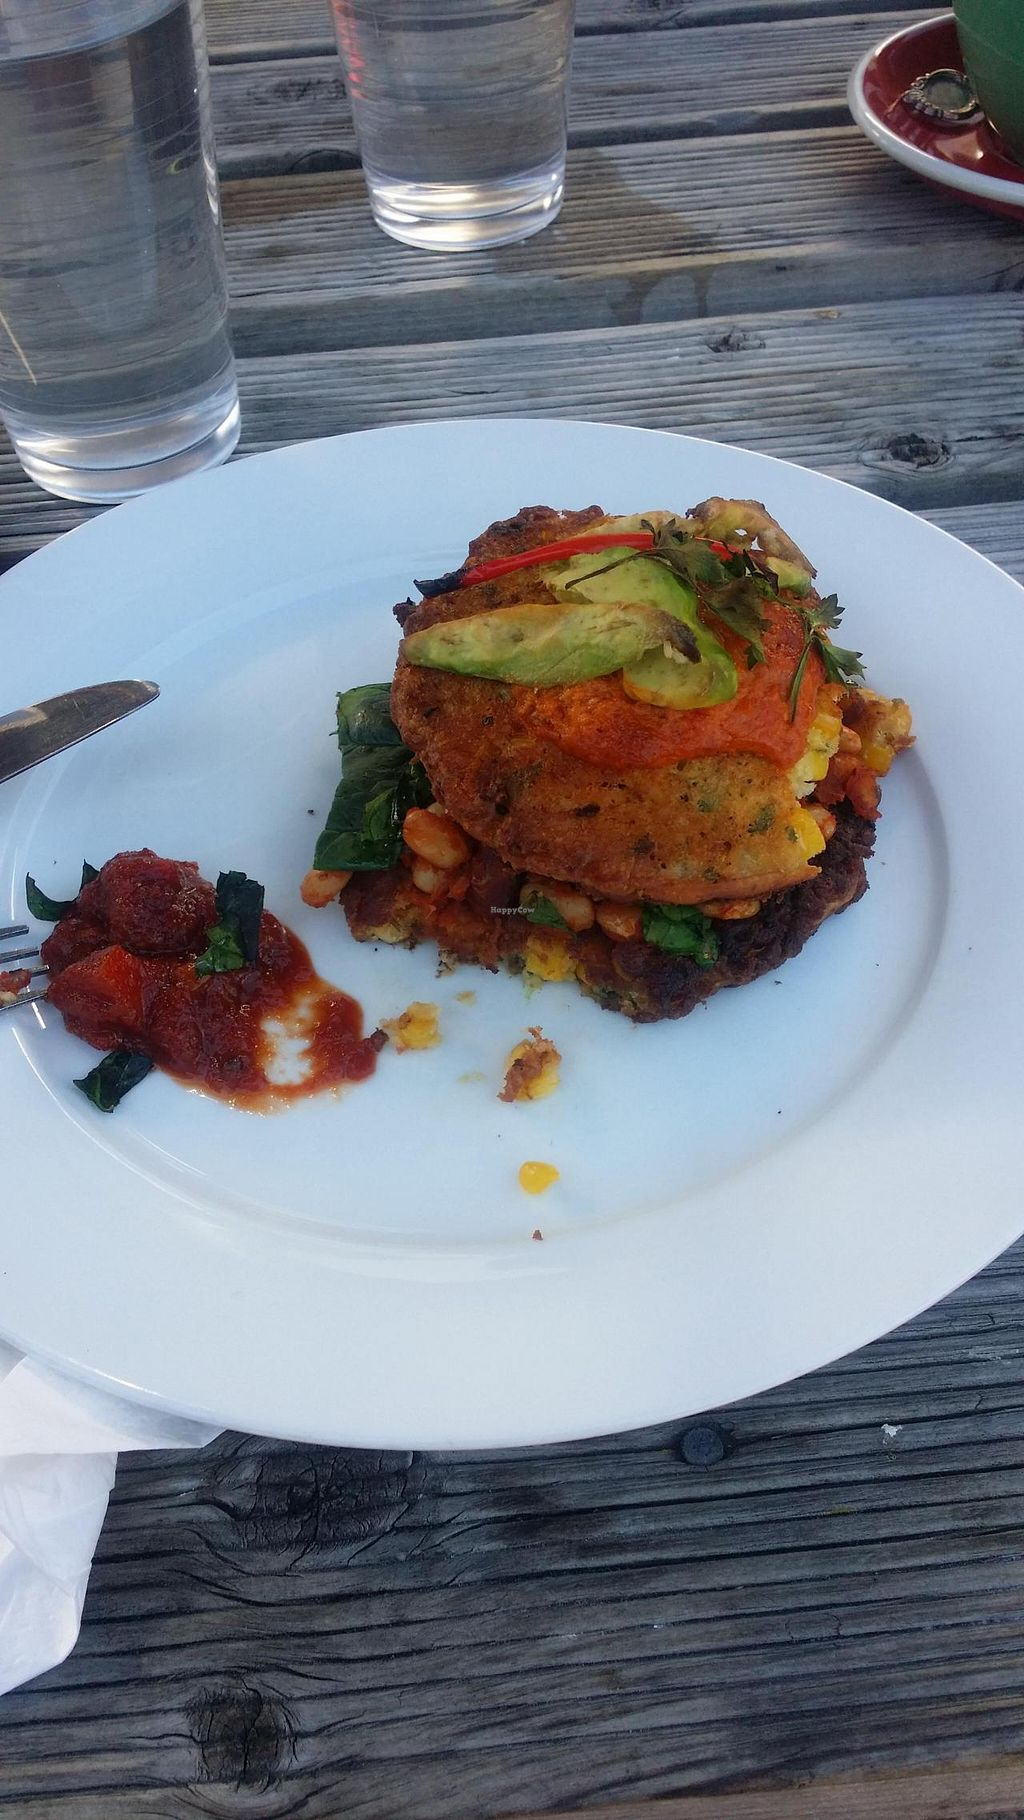 """Photo of Beat Street Cafe  by <a href=""""/members/profile/misstracee"""">misstracee</a> <br/>corn fritters from beat street <br/> November 23, 2014  - <a href='/contact/abuse/image/52800/86314'>Report</a>"""